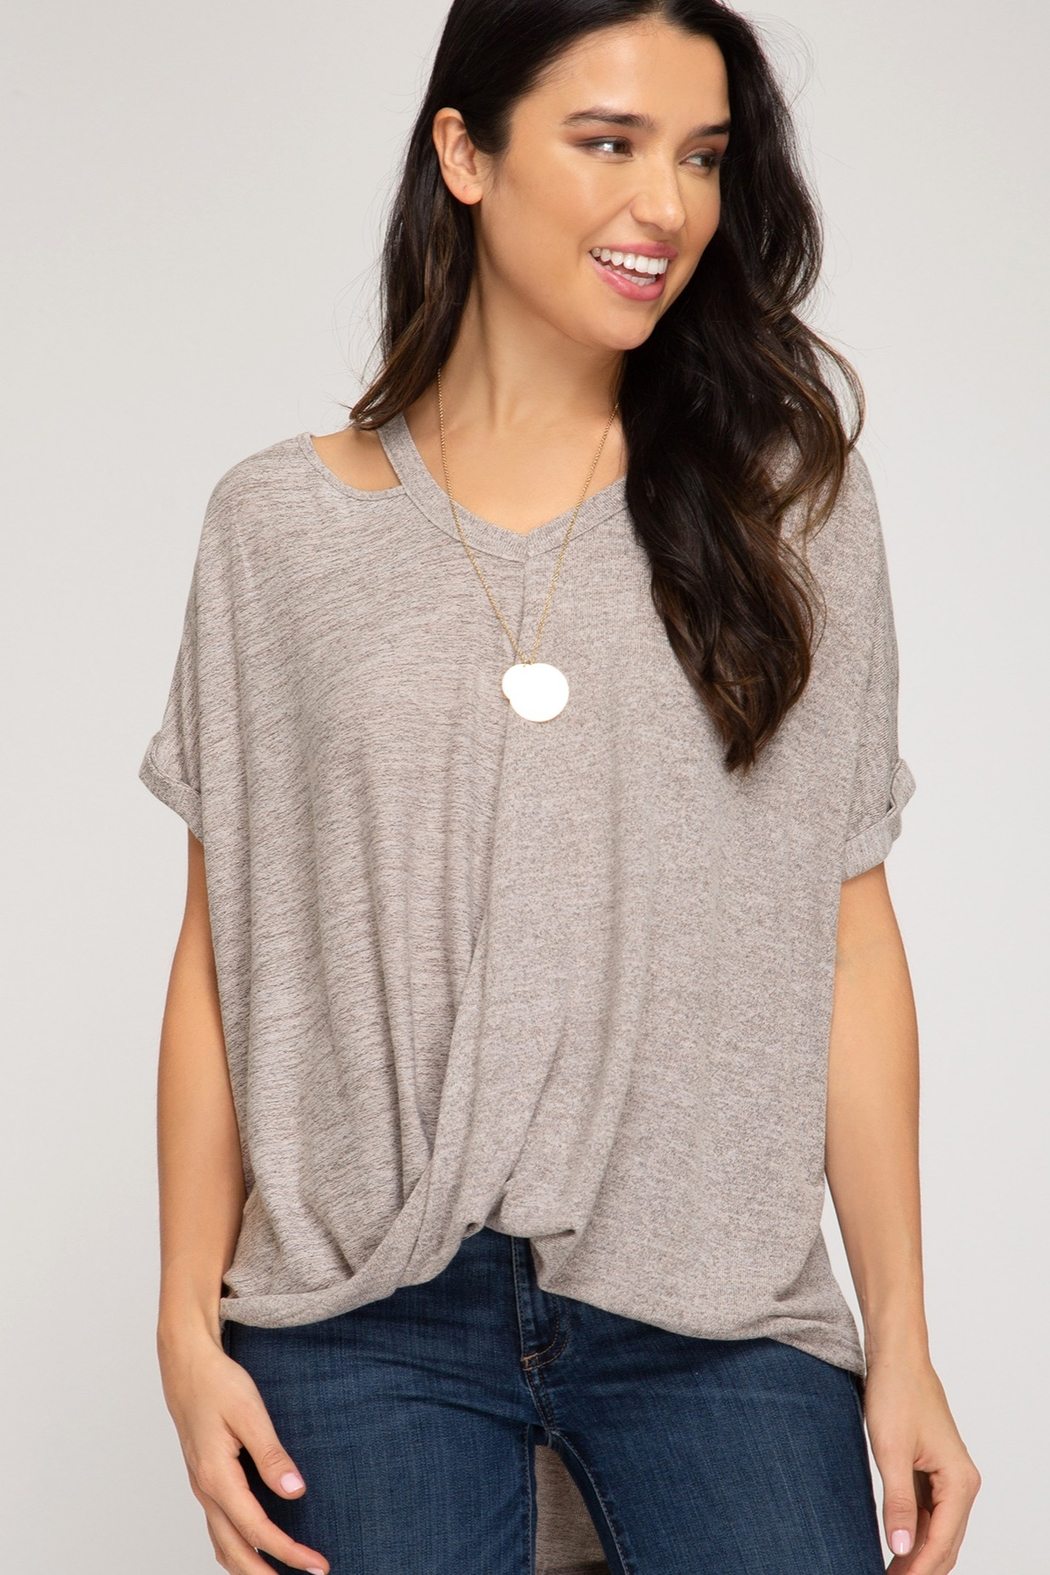 She and Sky Surpliced Top With Neck Cutouts - Front Cropped Image